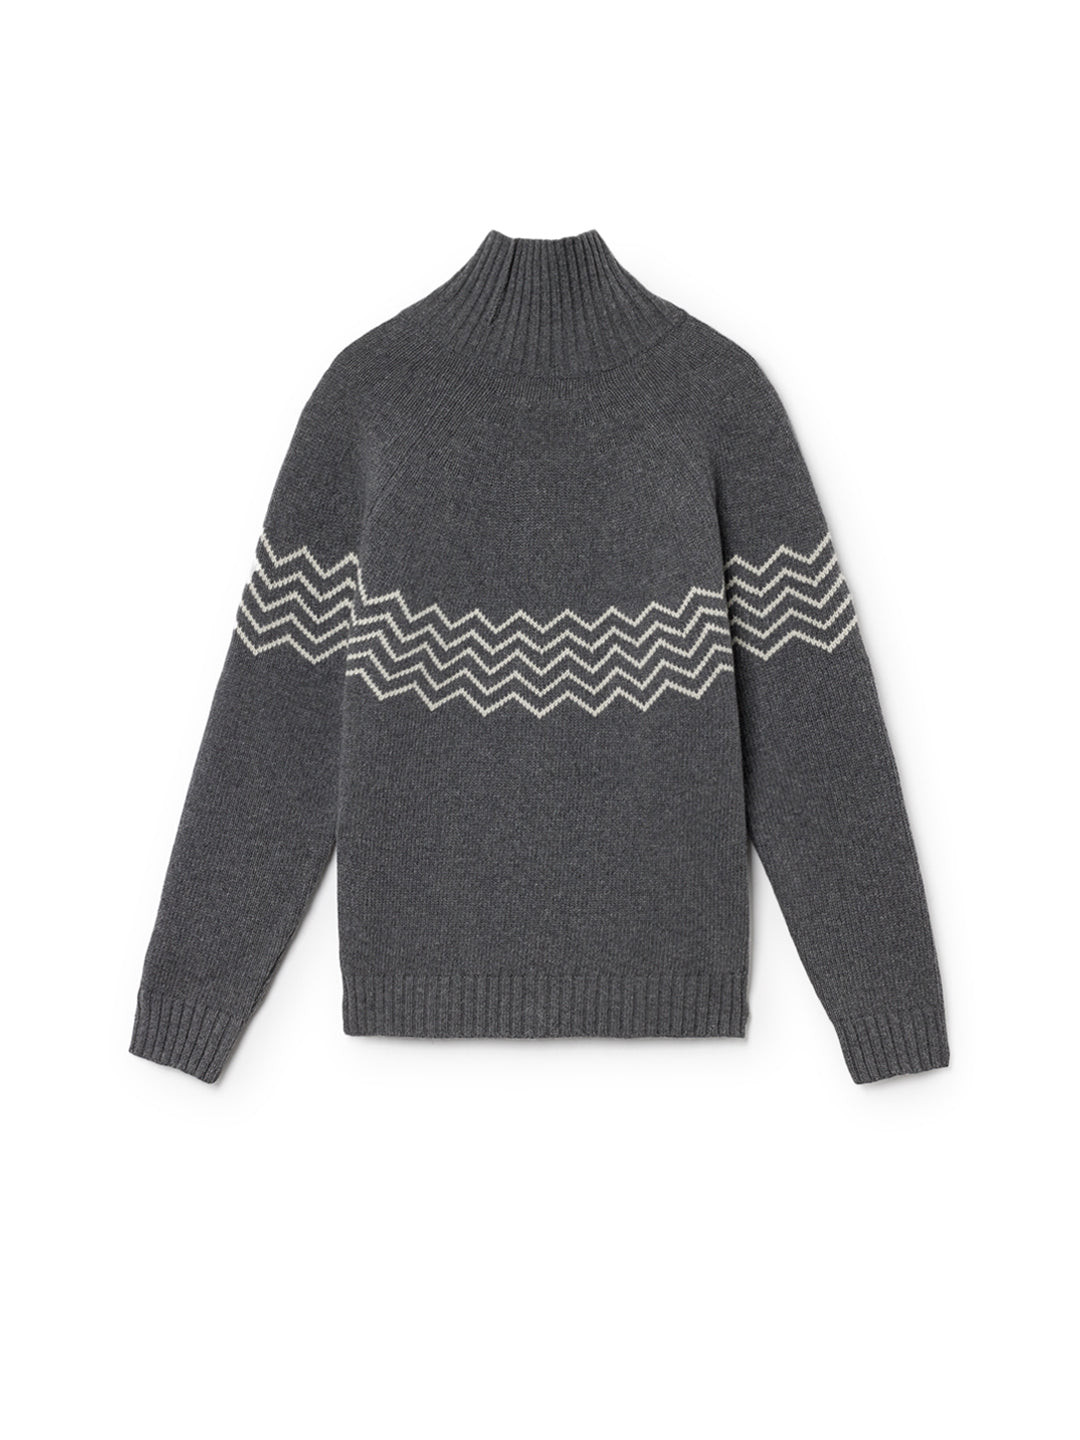 TWOTHIRDS Womens Knit: Ouvea - Grey back